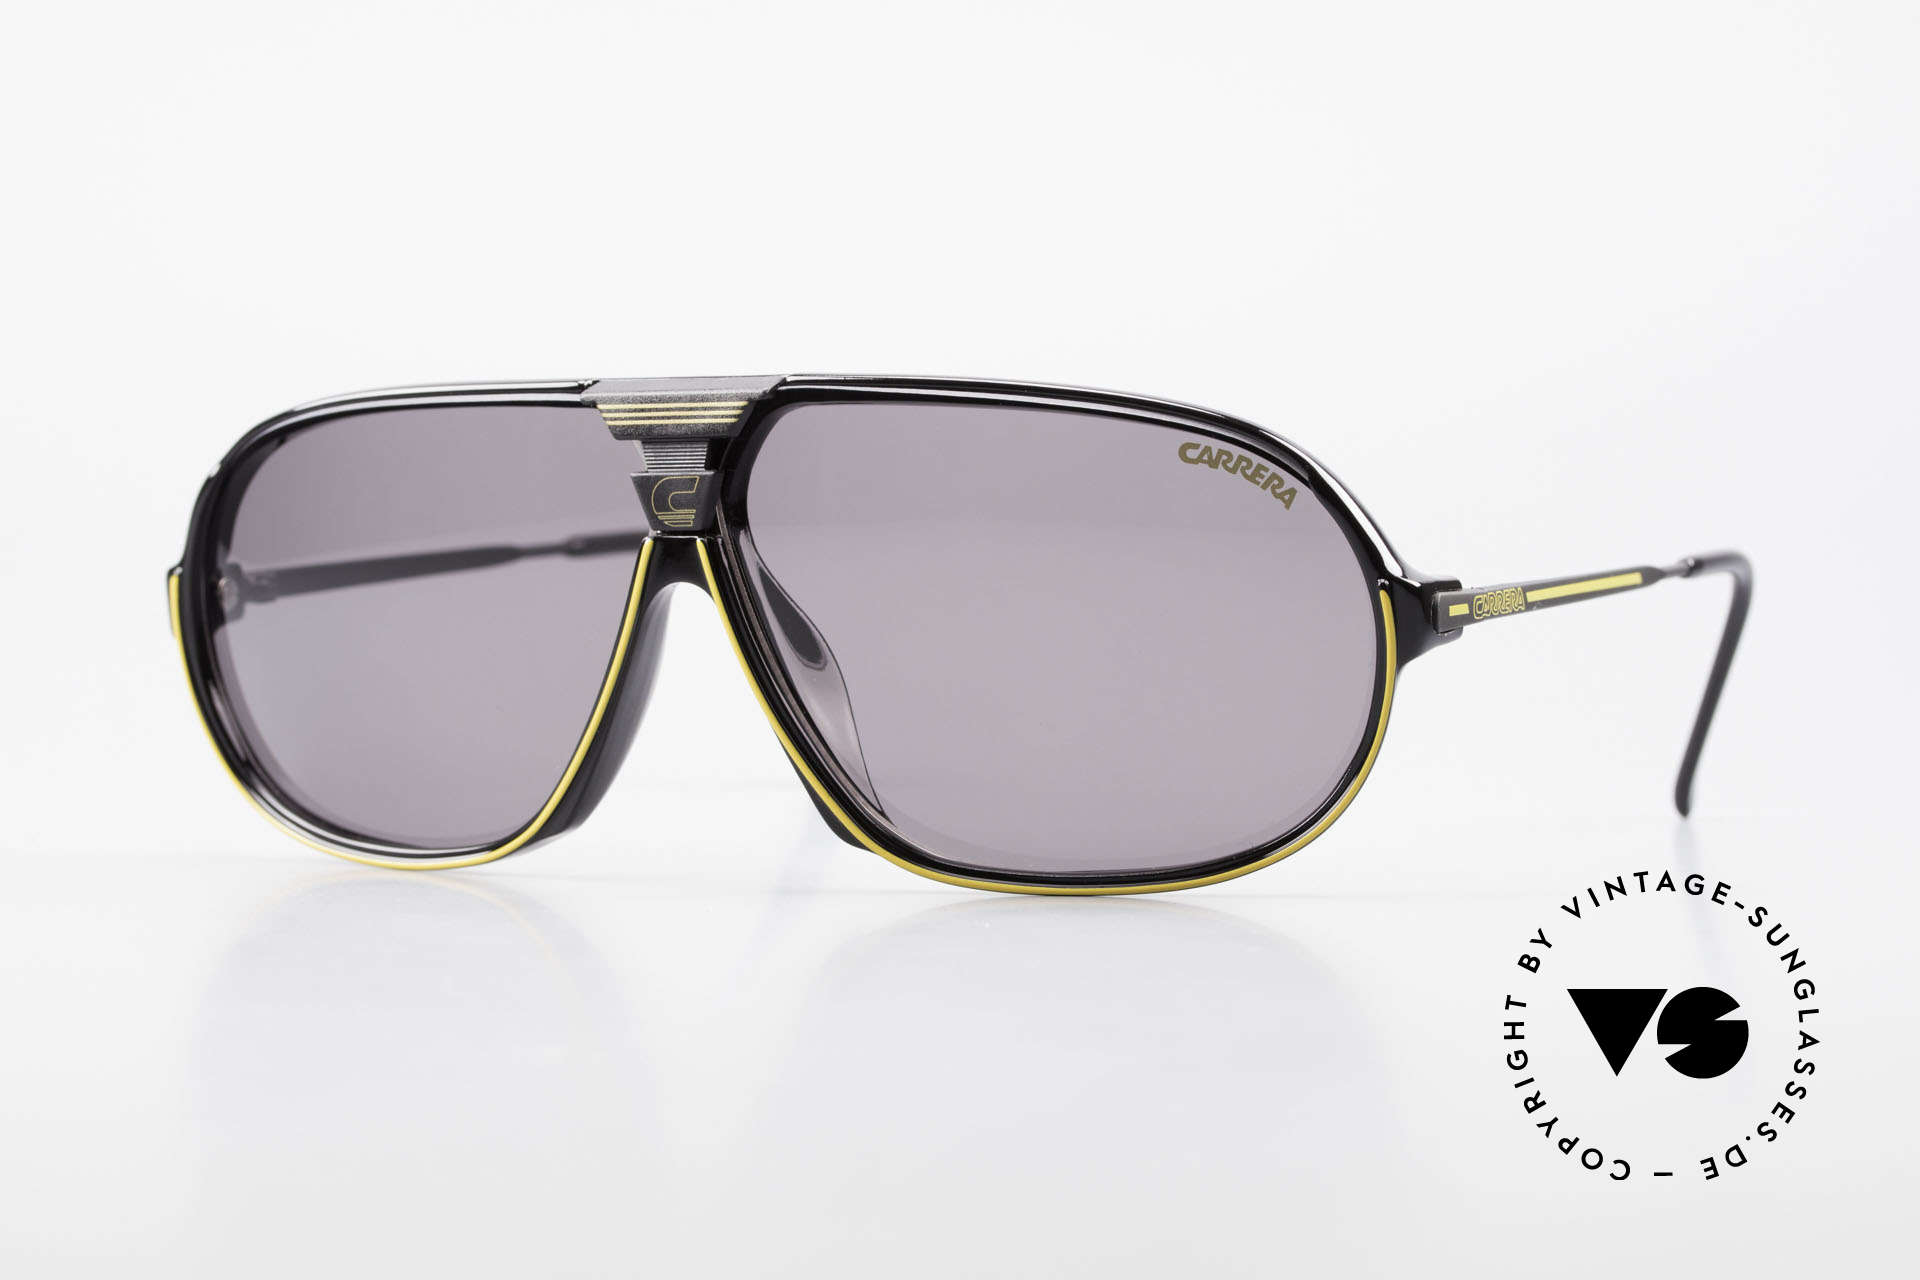 Carrera 5416 80's Sports Sunglasses Optyl, sensational sports shades by Carrera from 1988, Made for Men